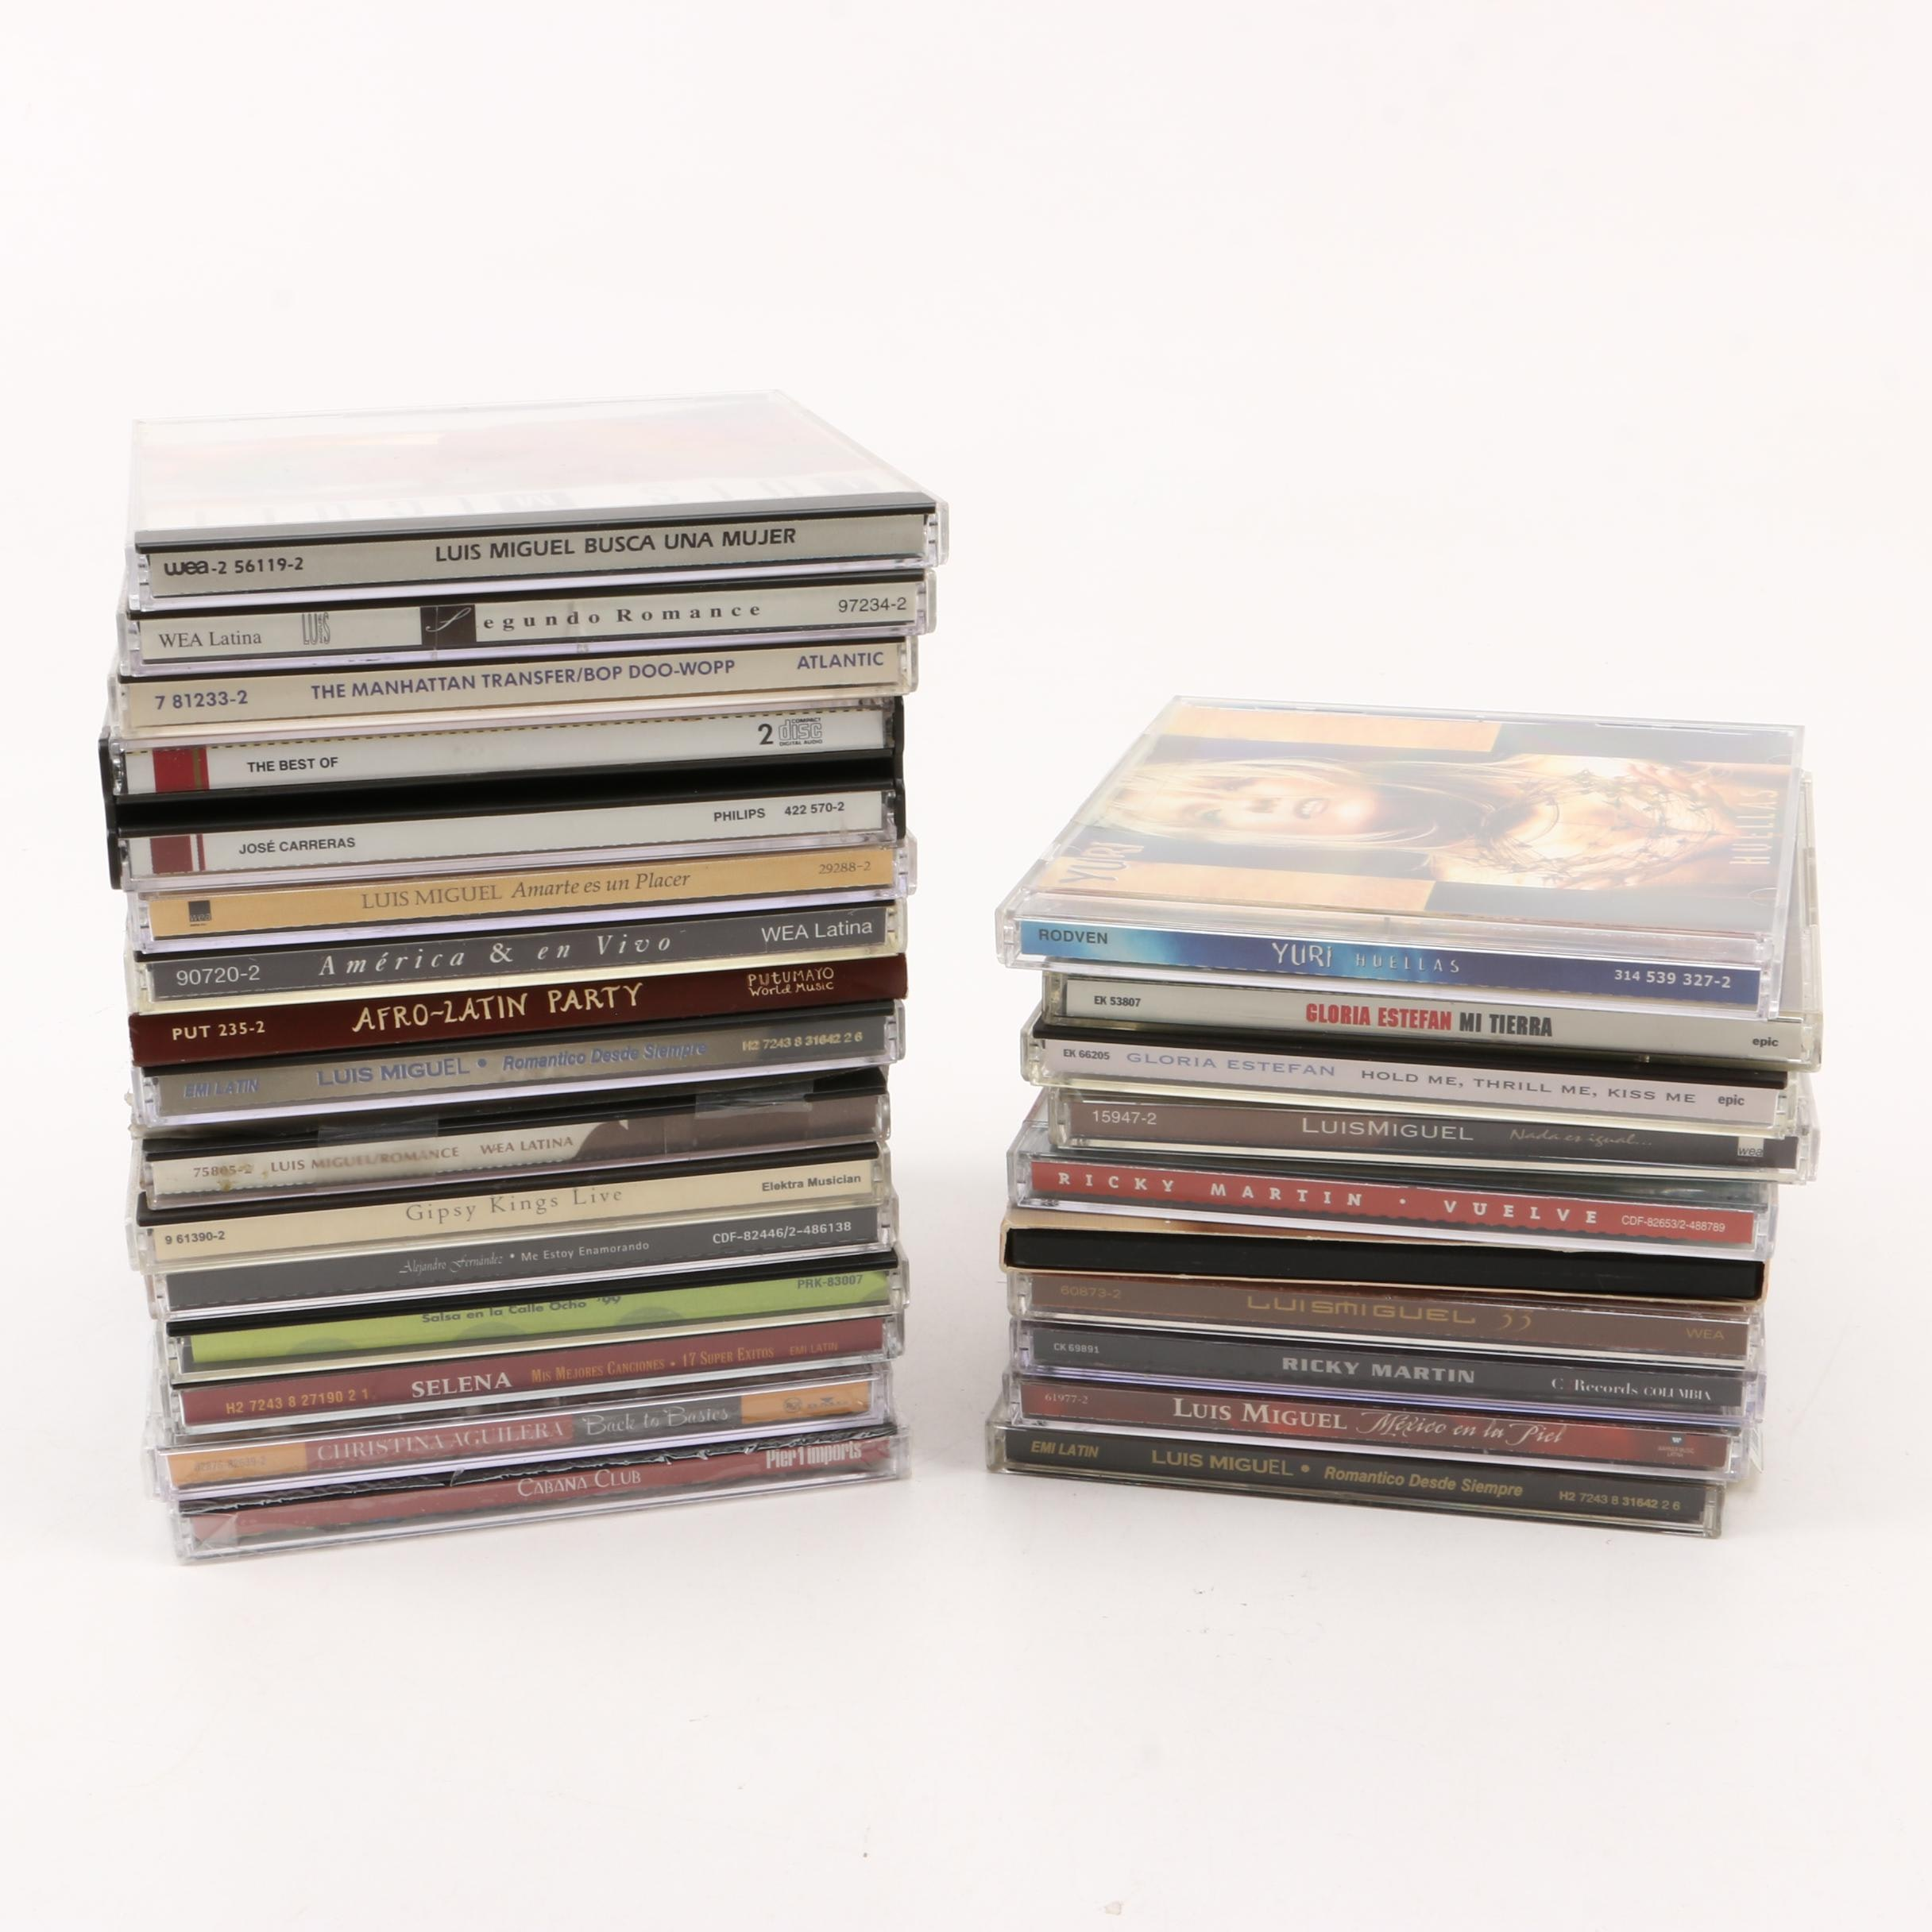 Gloria Estefan, Ricky Martin, Luis Miguel, and Other CDs